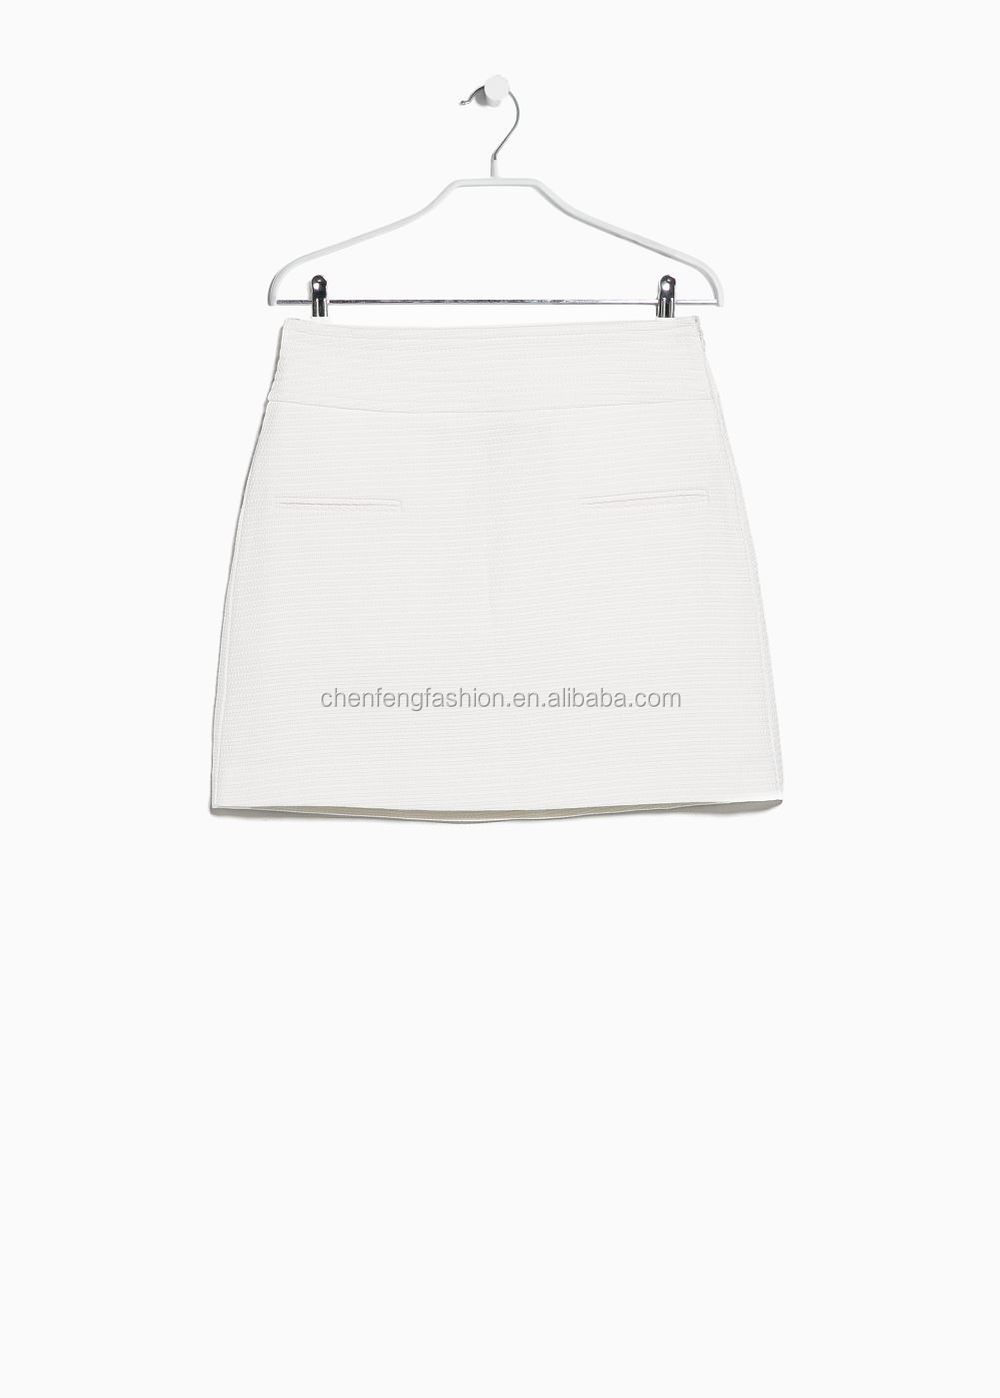 Textured Plain Short Skirts Models White A-line Skirt - Buy Short ...